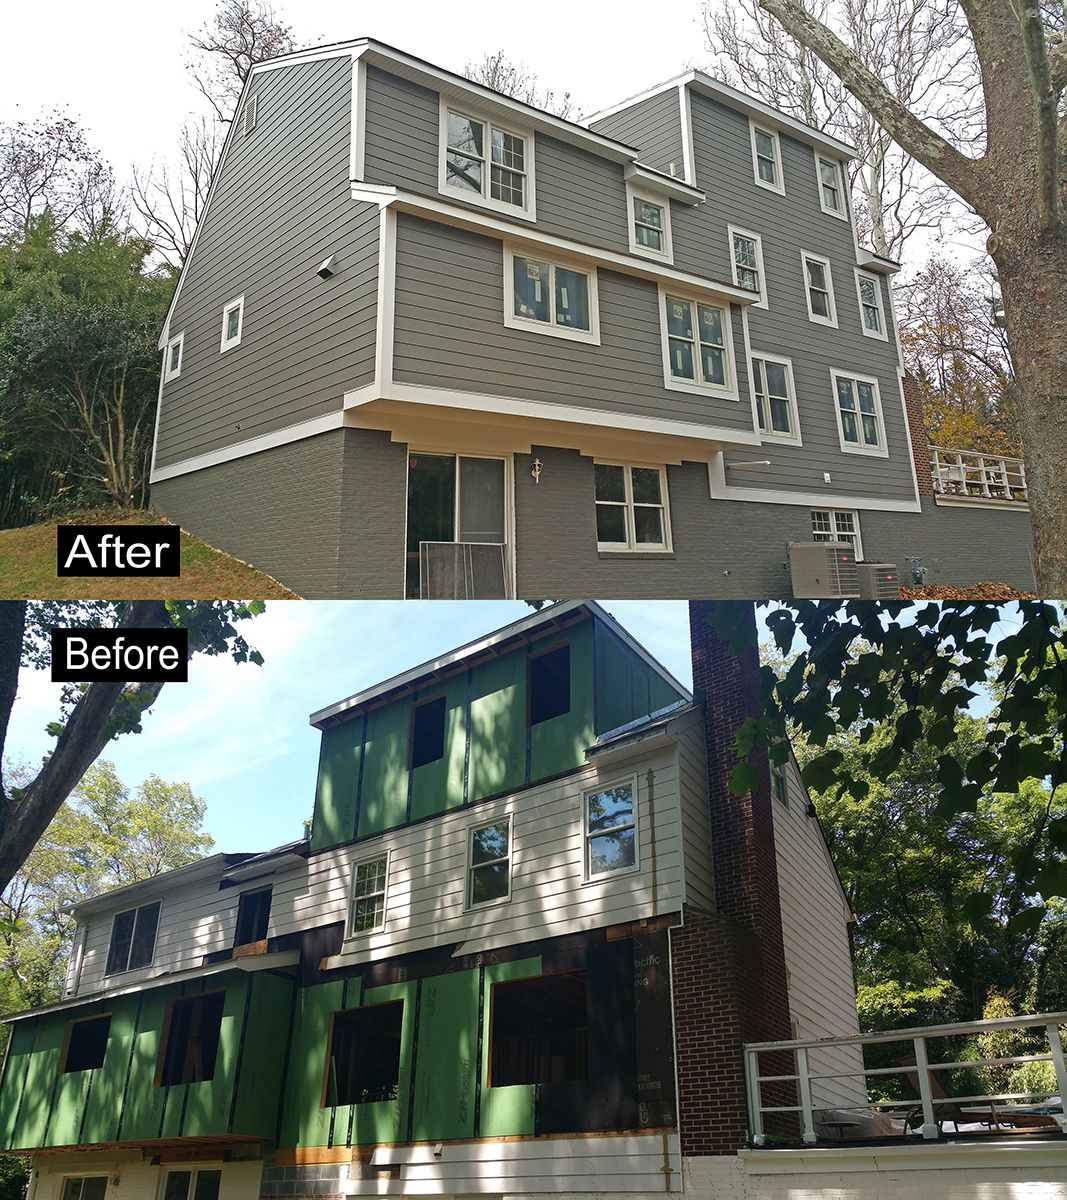 Siding Gallery Siding Replacement Works Crystal Exteriors Vinyl Soffit Siding Replacing Siding